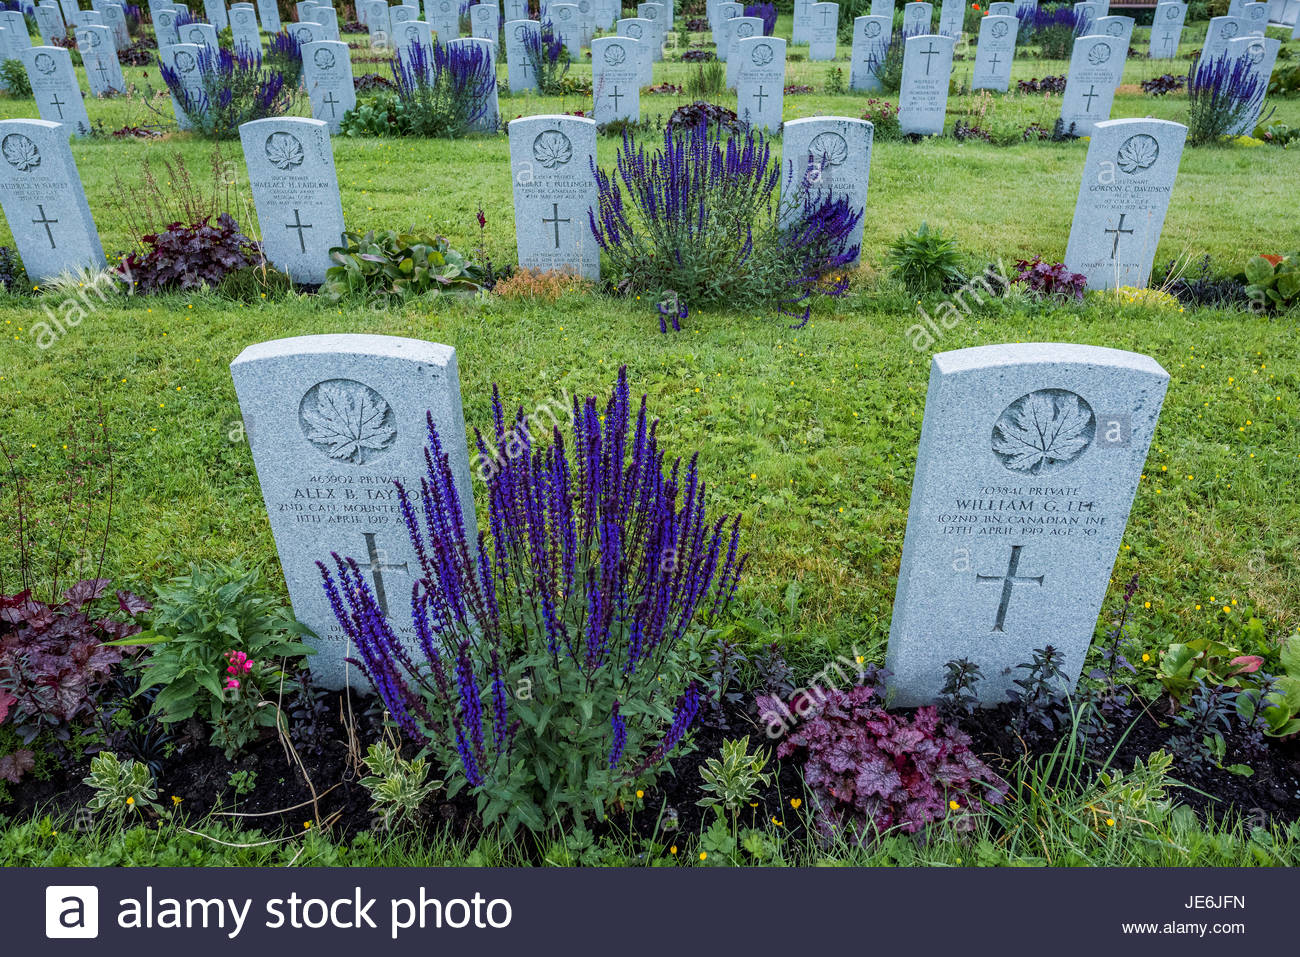 Gravesites of Canadian Infantry soldiers, Mountain View Cemetery, Vancouver, British Columbia, Canada, Stock Photo